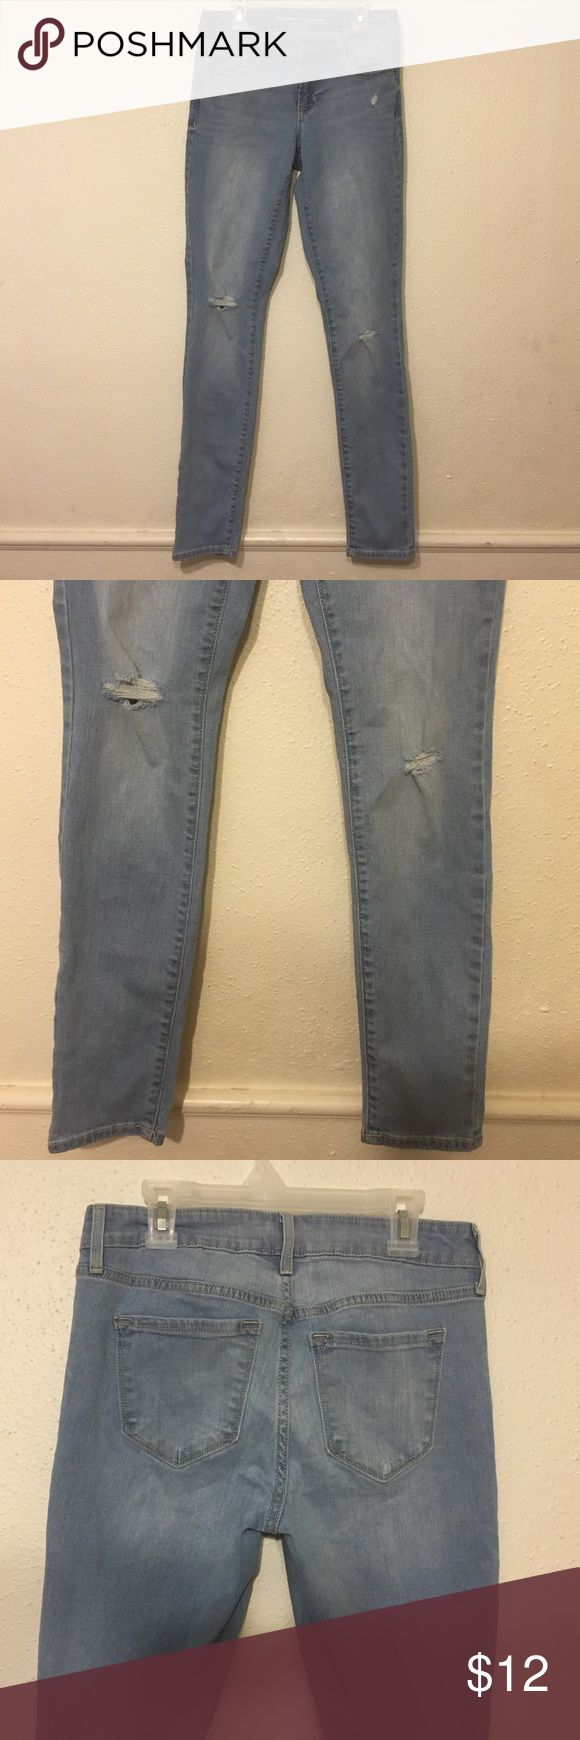 Faded Old Navy jeans with ripped holes at knees. Faded, ripped holes at knees, like new. Only used to fit but it didn't fit me well, it's stretchable, comfy, looks good with big hips and thighs. Old Navy Jeans Skinny